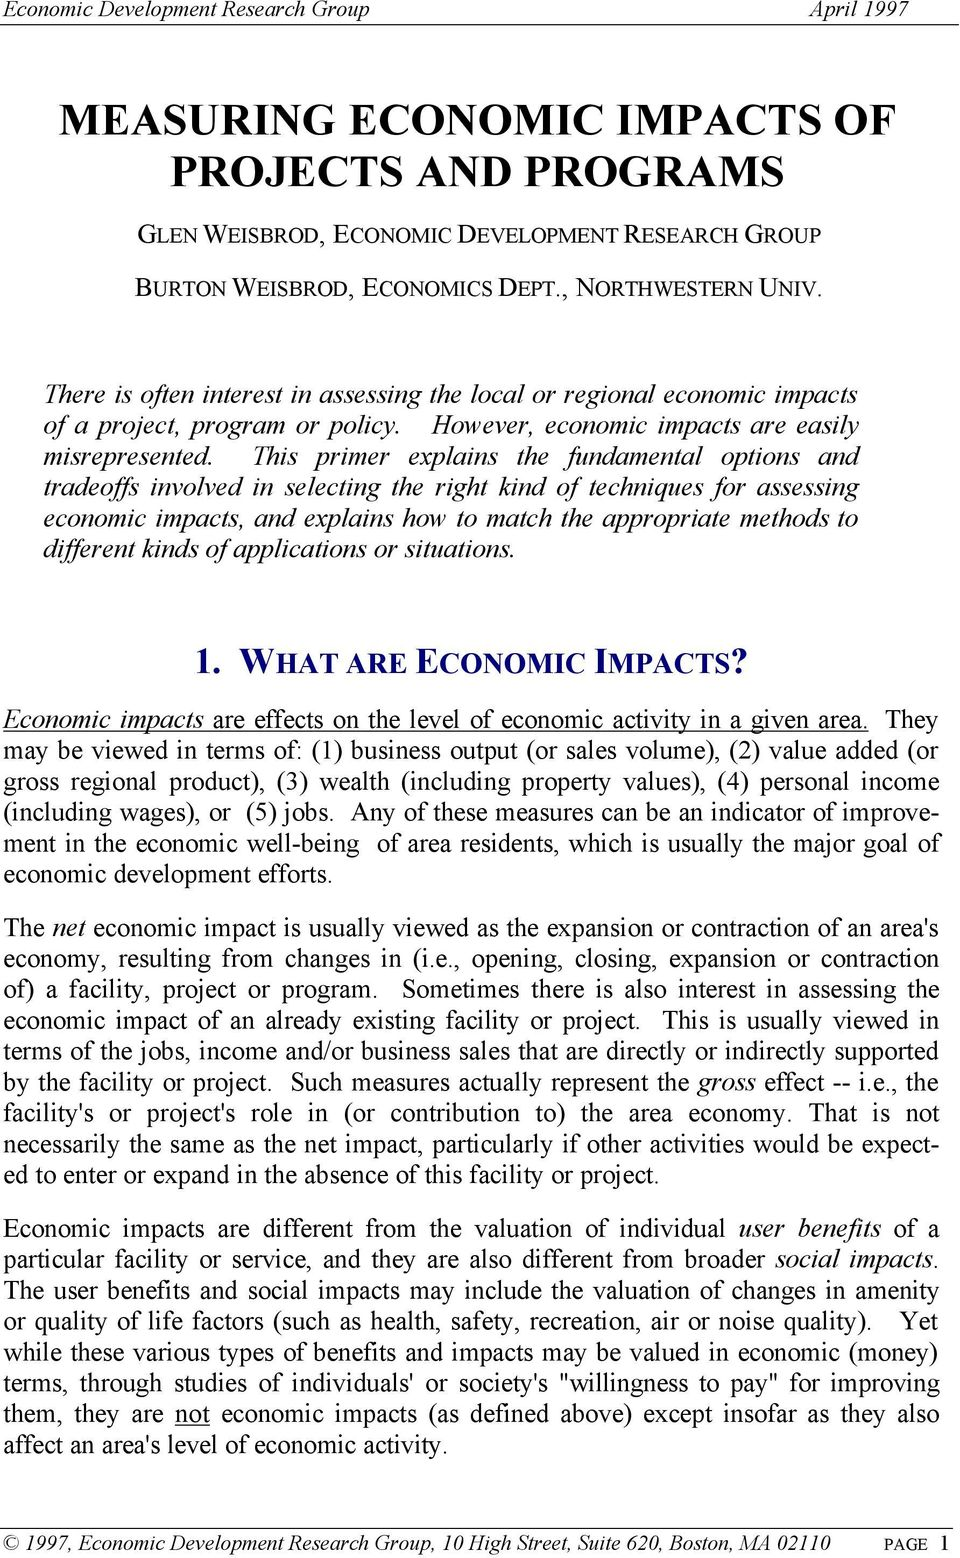 This primer explains the fundamental options and tradeoffs involved in selecting the right kind of techniques for assessing economic impacts, and explains how to match the appropriate methods to